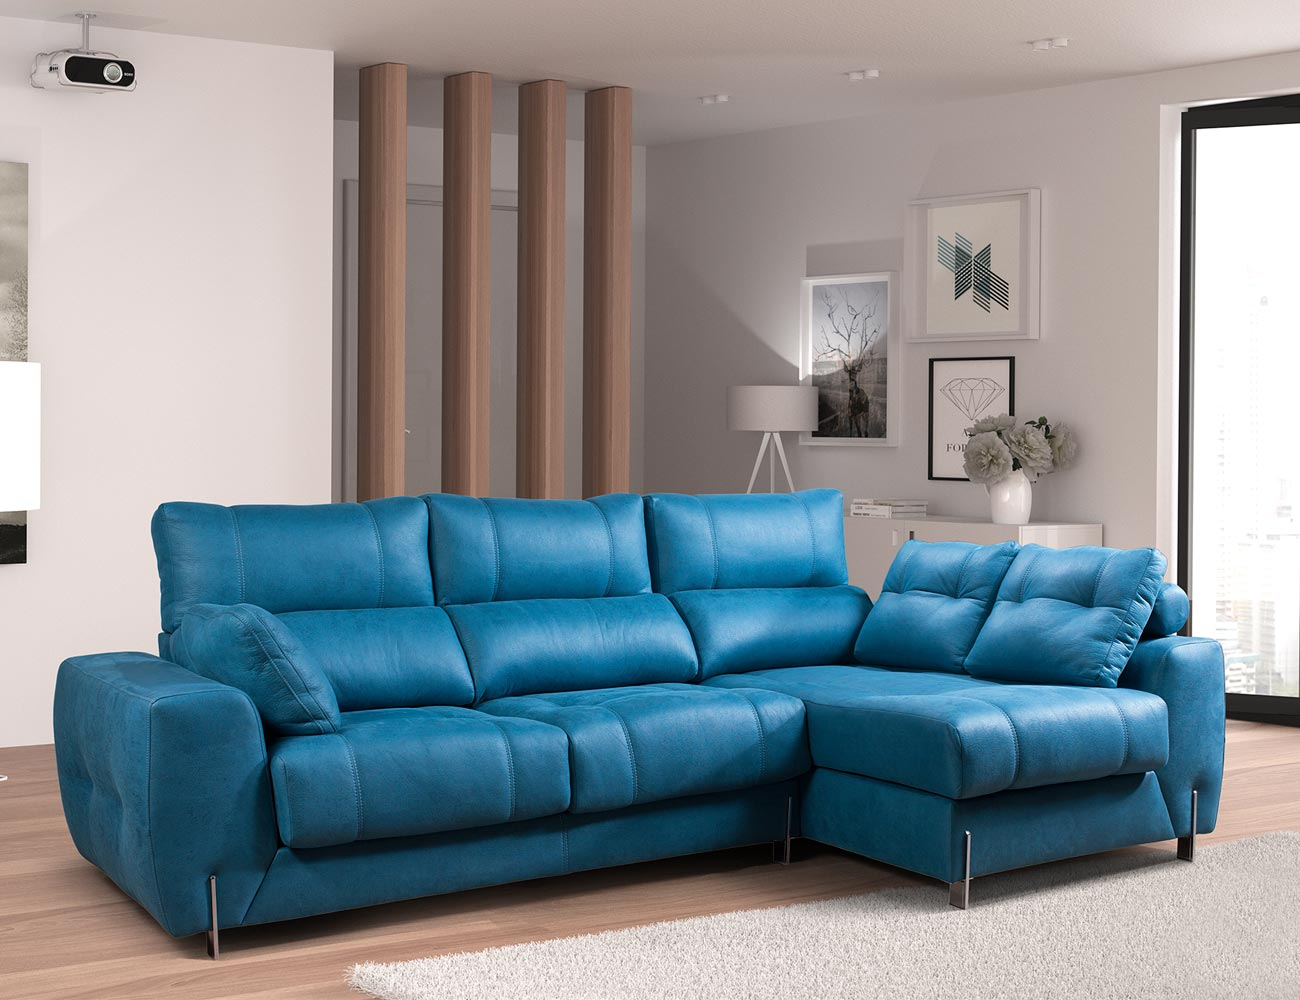 Sofa chaiselongue moderno exclusivo